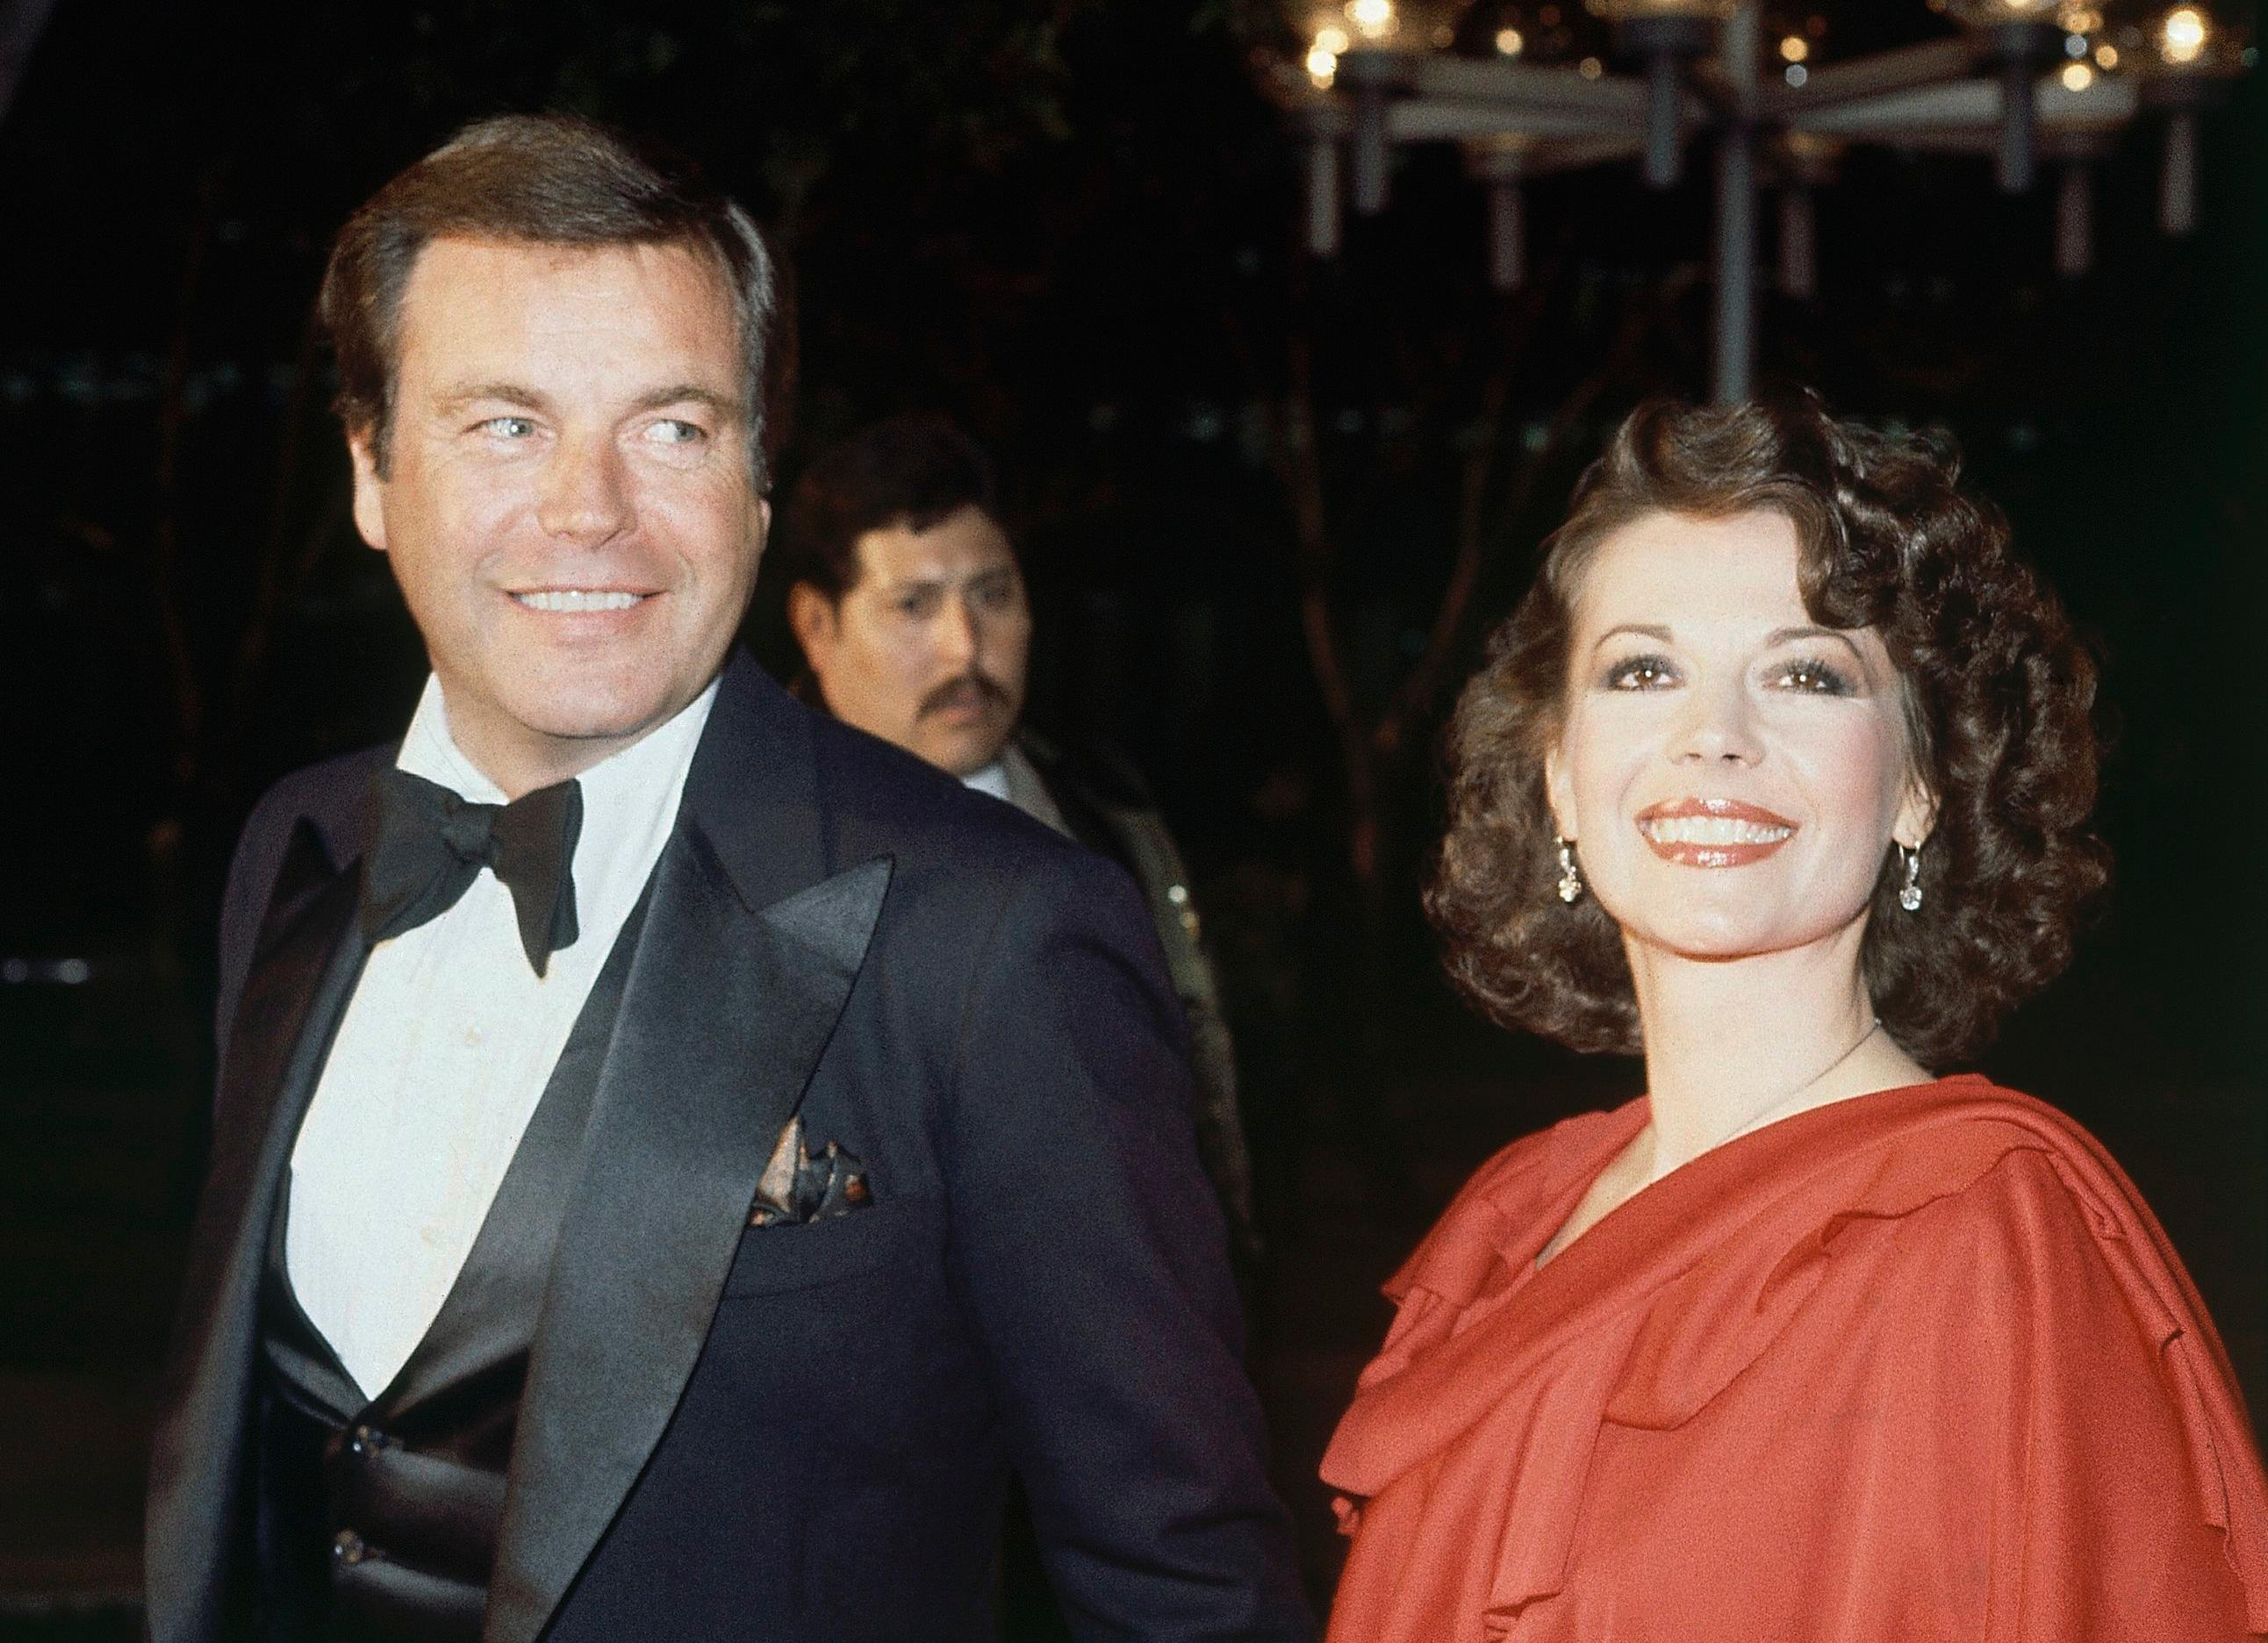 FILE - In this April 3, 1978 file photo, Robert Wagner and Natalie Wood arrive at the 50th Annual Academy Awards in Los Angeles. Detectives hope the latest round of renewed interest in the mysterious 1981 death of actress Natalie Wood will bring forward new witnesses, but this may otherwise be the end of the investigation, a Los Angeles County sheriff's official said Monday, Feb. 5, 2018. Wood was found floating in the ocean during a Thanksgiving weekend yachting trip to Catalina Island with her husband, actor Robert Wagner, actor Christopher Walken and the boat captain. Her death was initially classified as a drowning. (AP Photo, File)